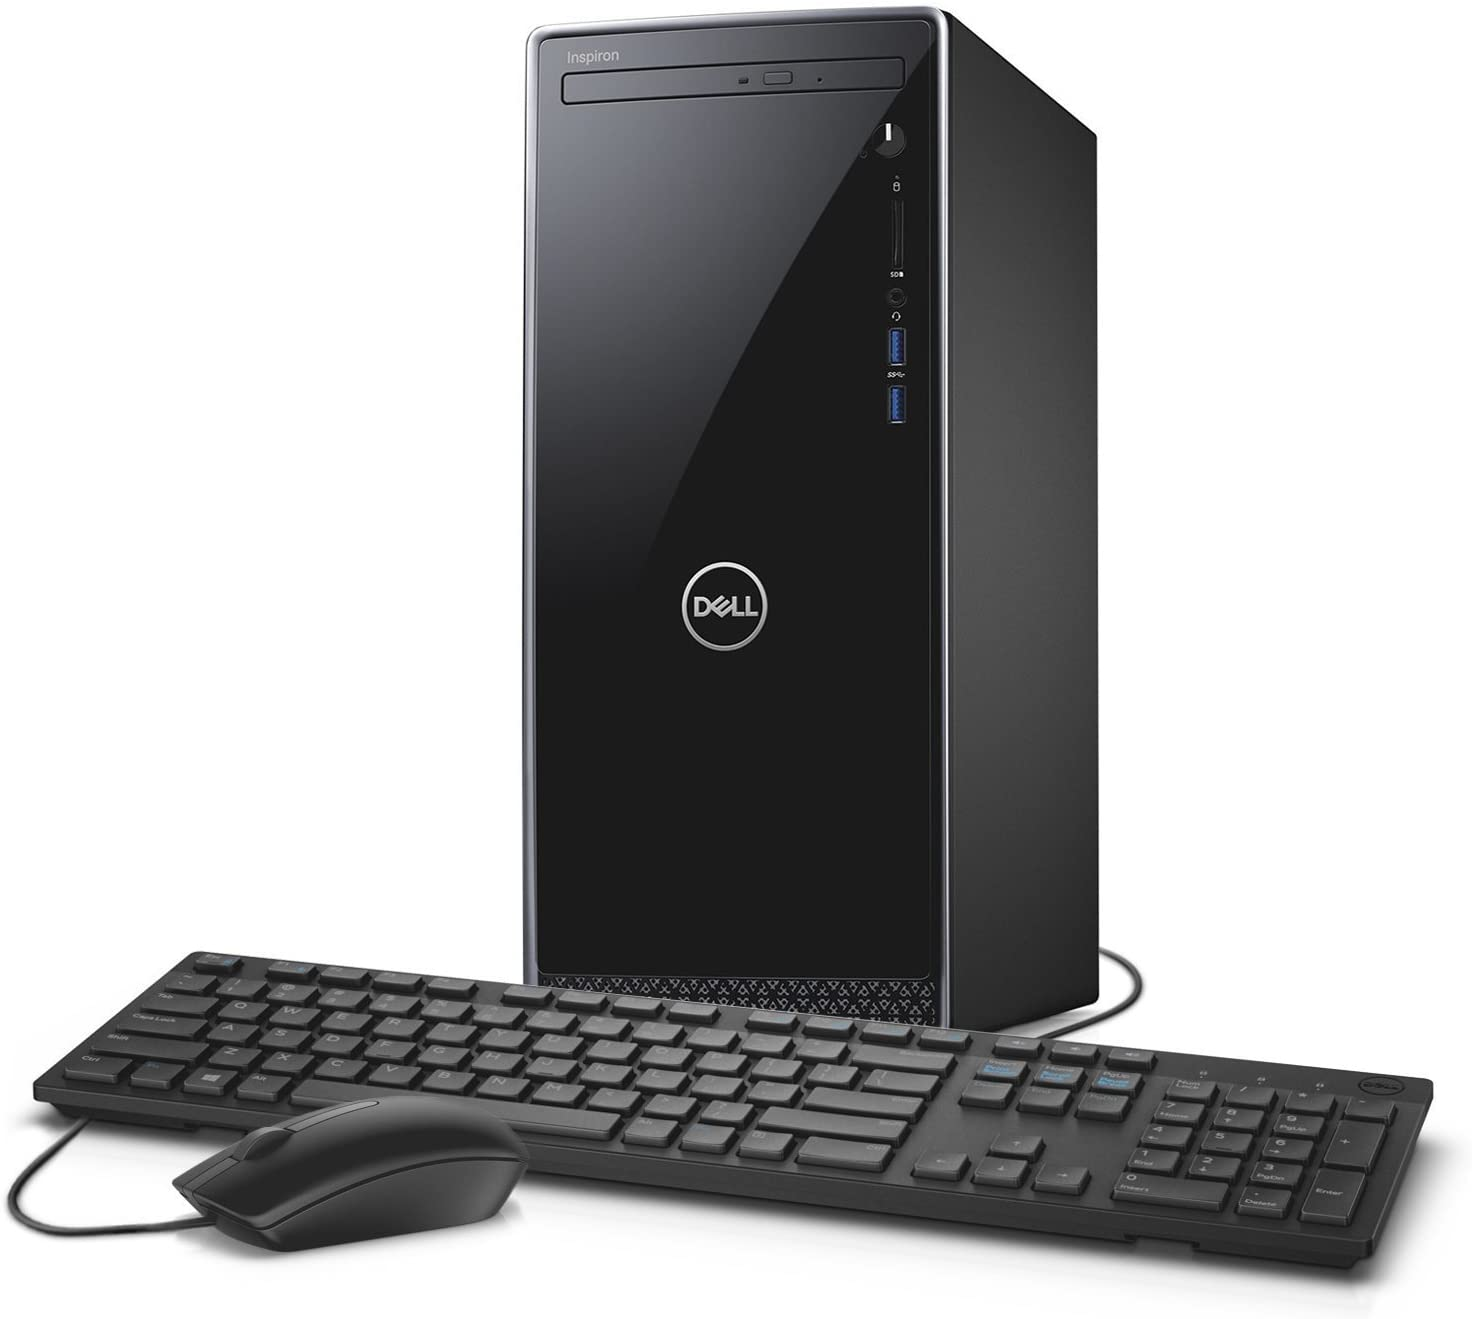 2019 Newest Dell Inspiron Premium Desktop: Latest 9th gen Intel Six-Core i5-9400, 12GB Ram, 128GB SSD + 1TB HDD Dual Drive, WiFi, Bluetooth, DVDRW, HDMI, VGA, USB Keyboard and Mouse, Windows 10 Home